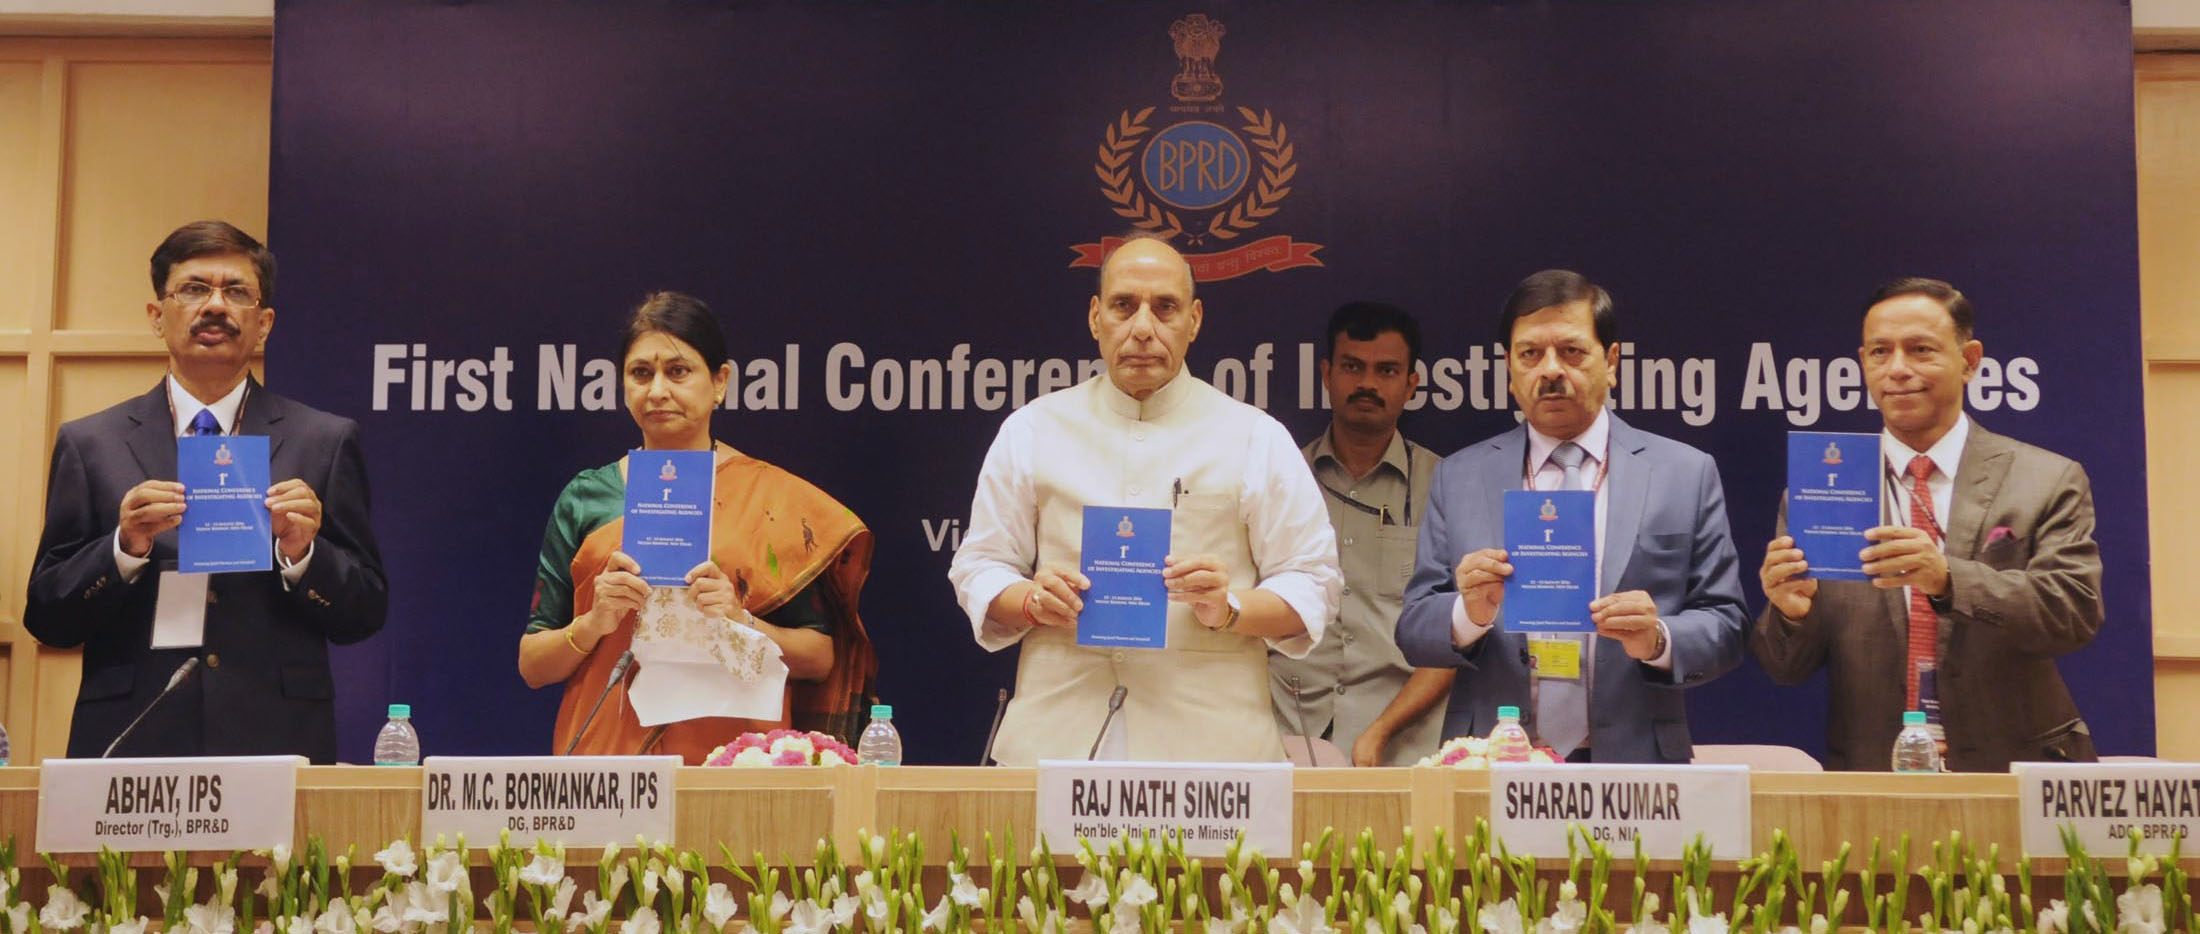 The Union Home Minister, Shri Rajnath Singh releasing a brochure, at the inaugural ceremony of the 1st National Conference of Investigating Agencies, in New Delhi on August 12, 2016. The DG, NIA, Shri Sharad Kumar, the DG, Bureau of Police Research and Development (BPR&D), Dr. M.C. Borwankar and other dignitaries are also seen.